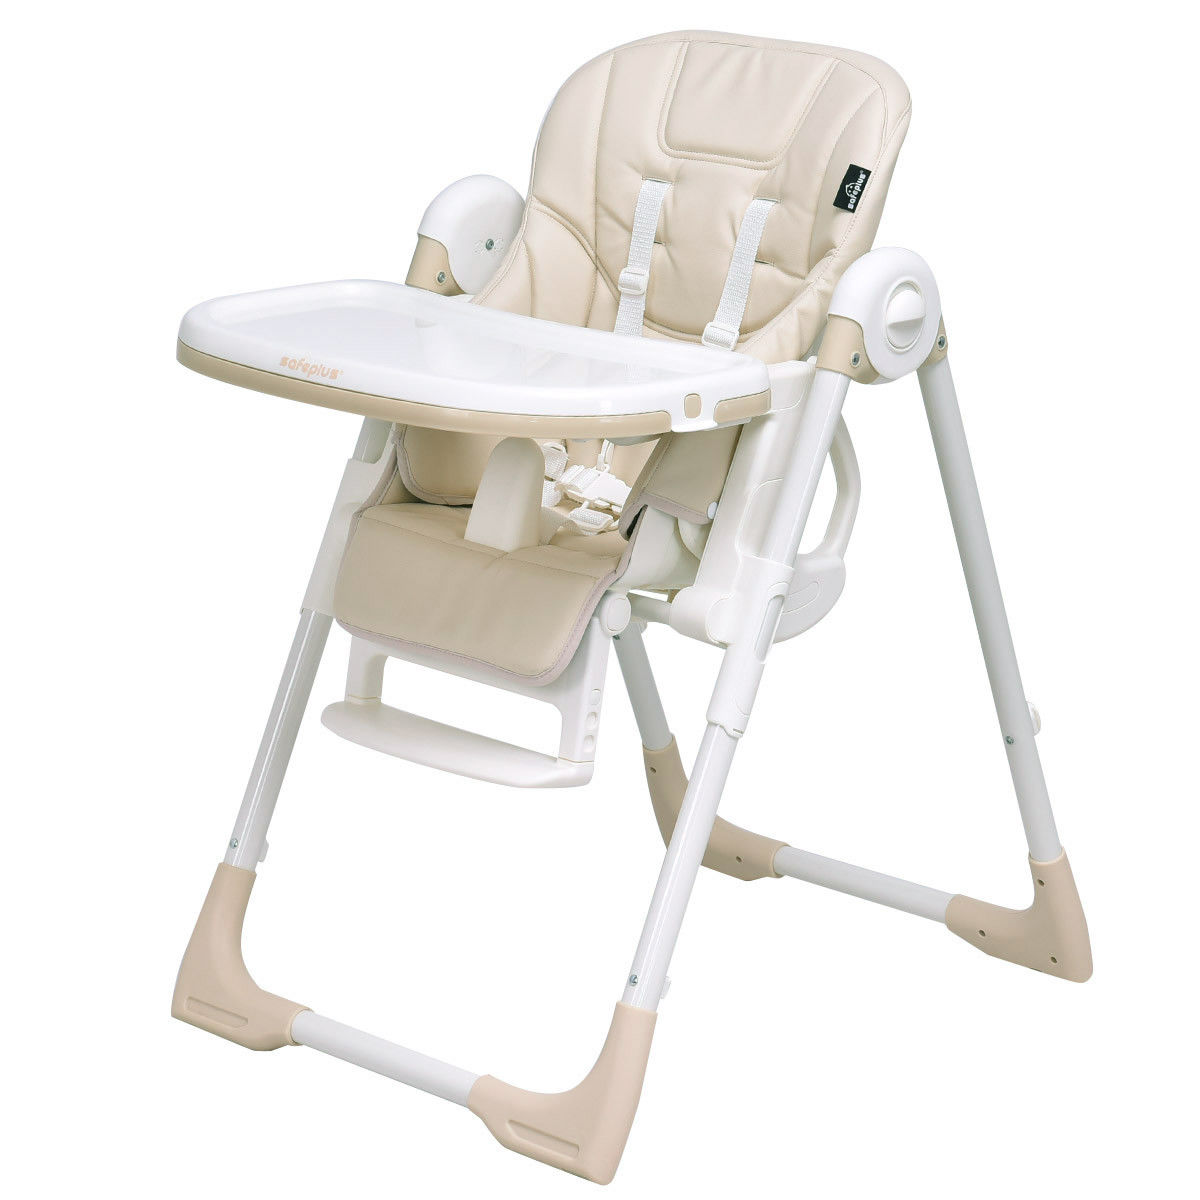 Goplus Folding Height Adjustable Recline Baby High Chair Infant Toddler Feeding Booster